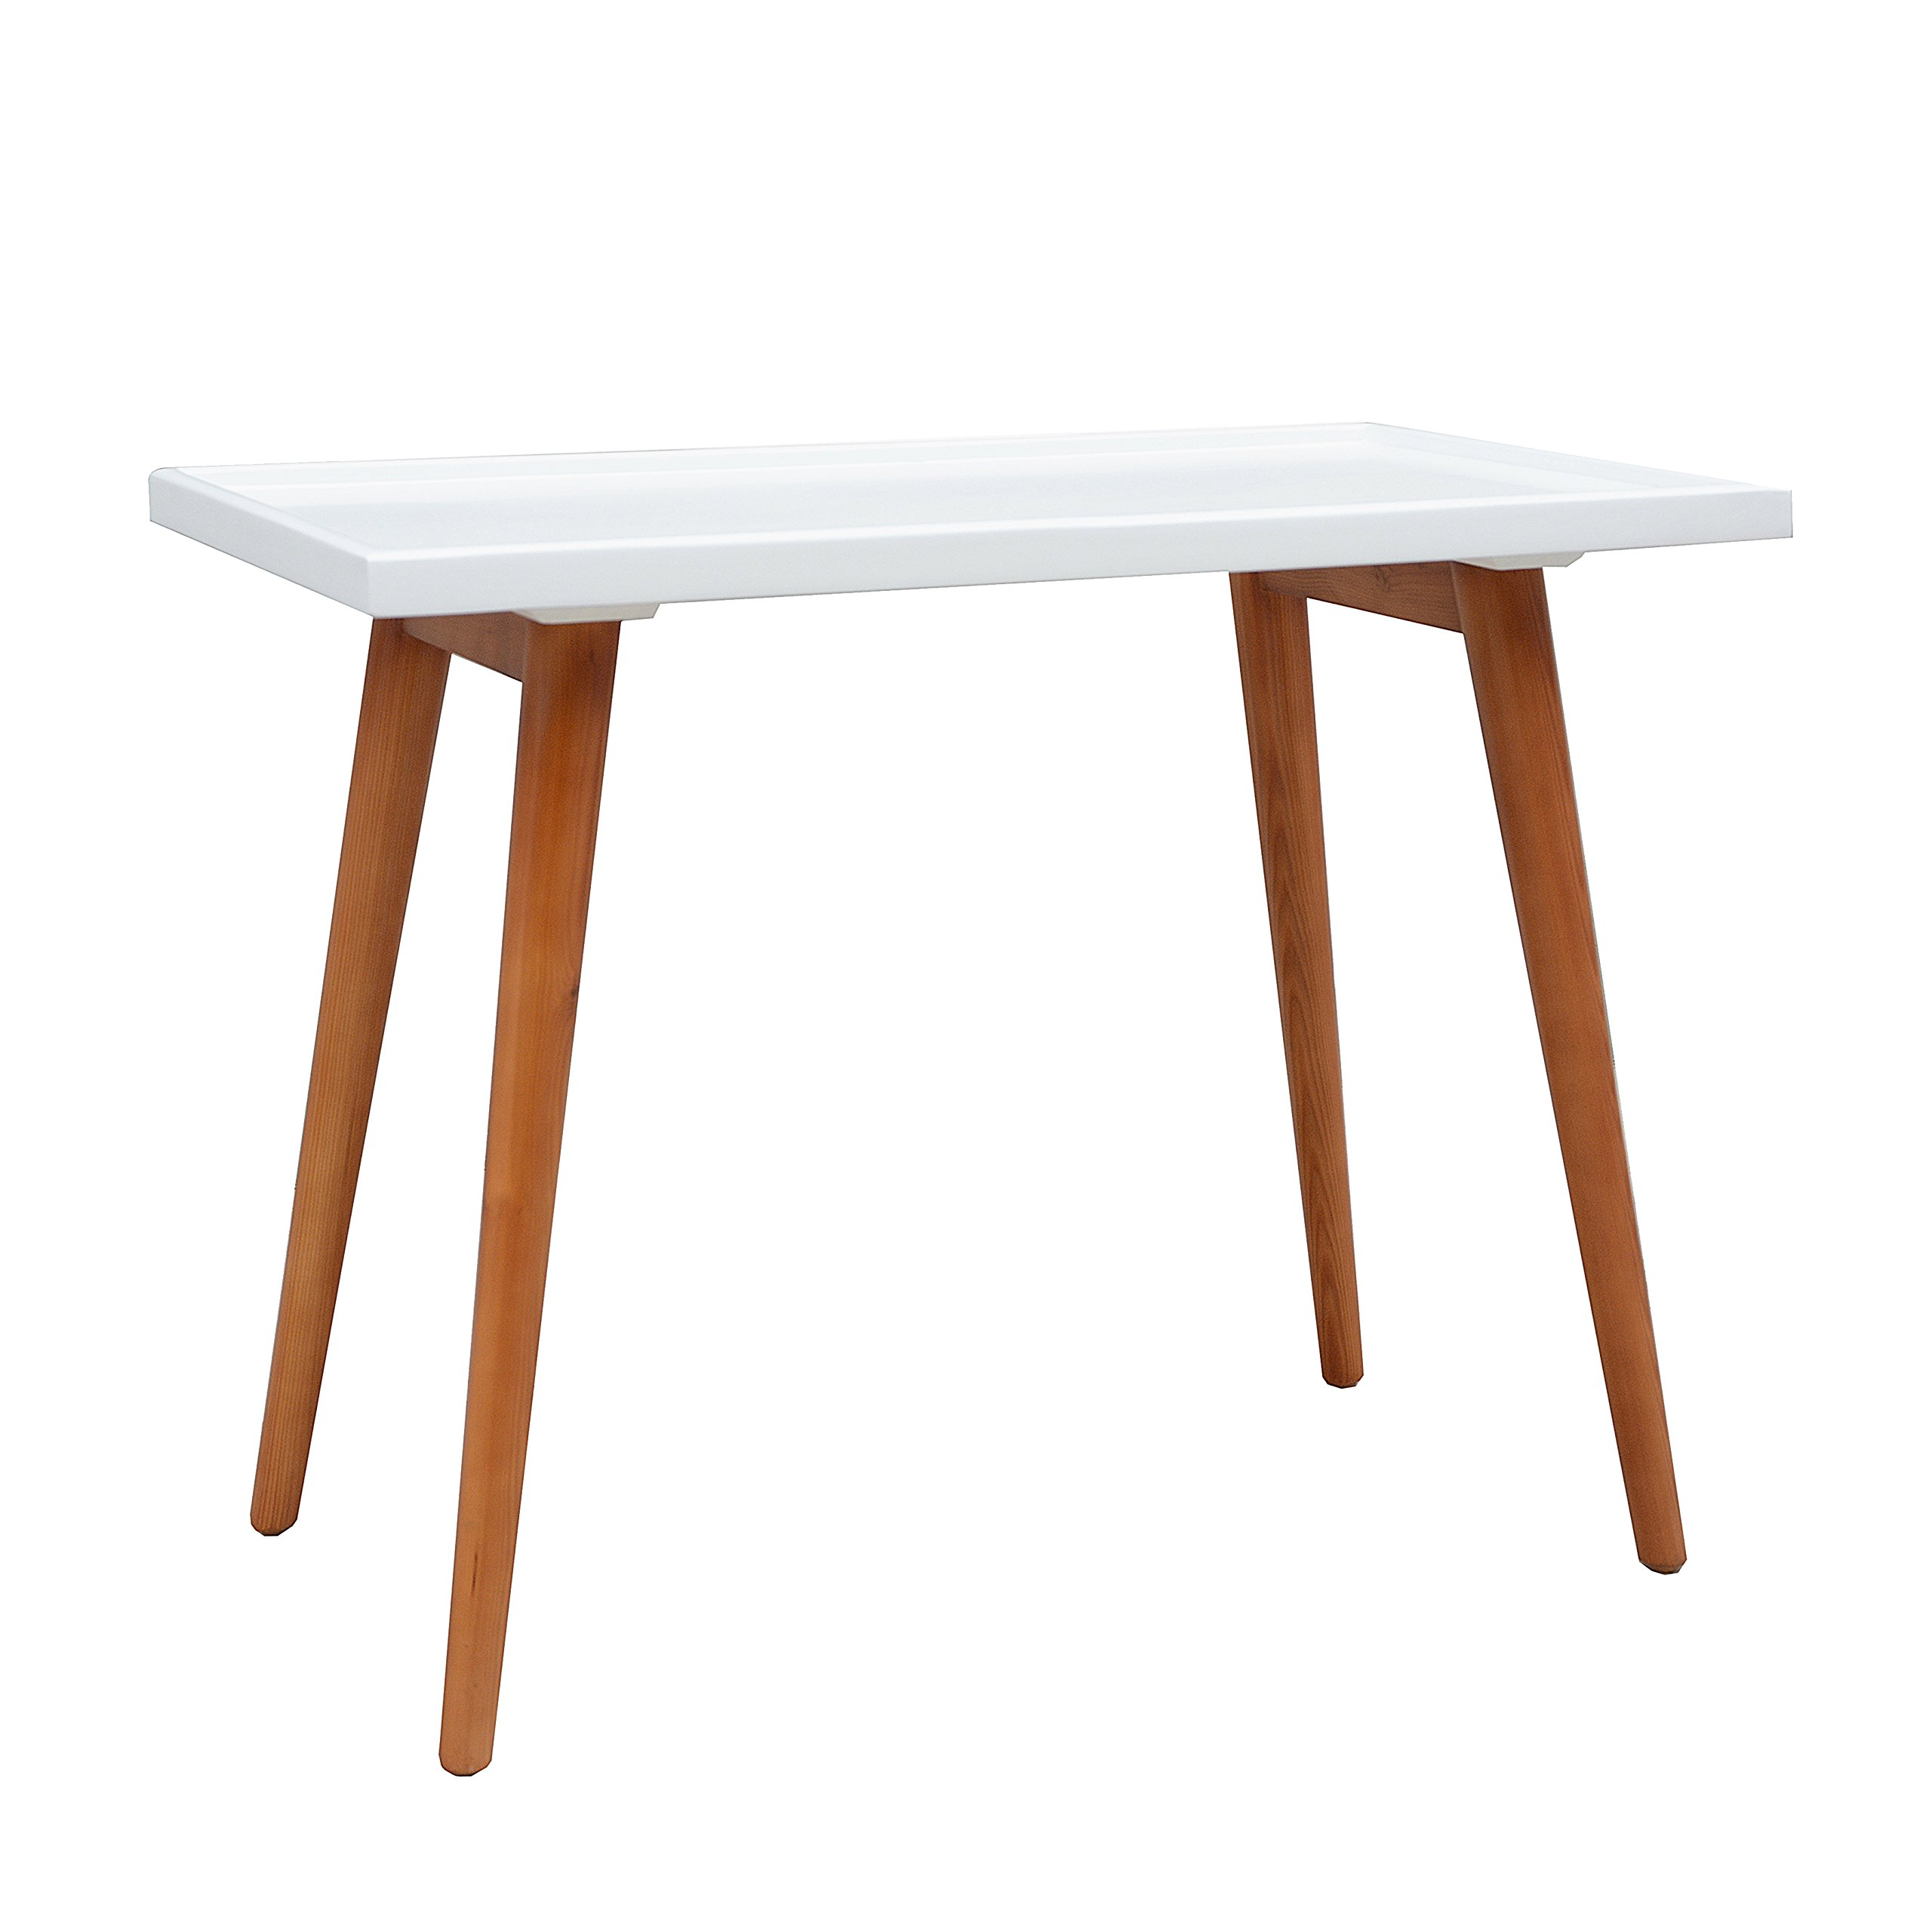 Porthos Home Amber Pine Console Table, White